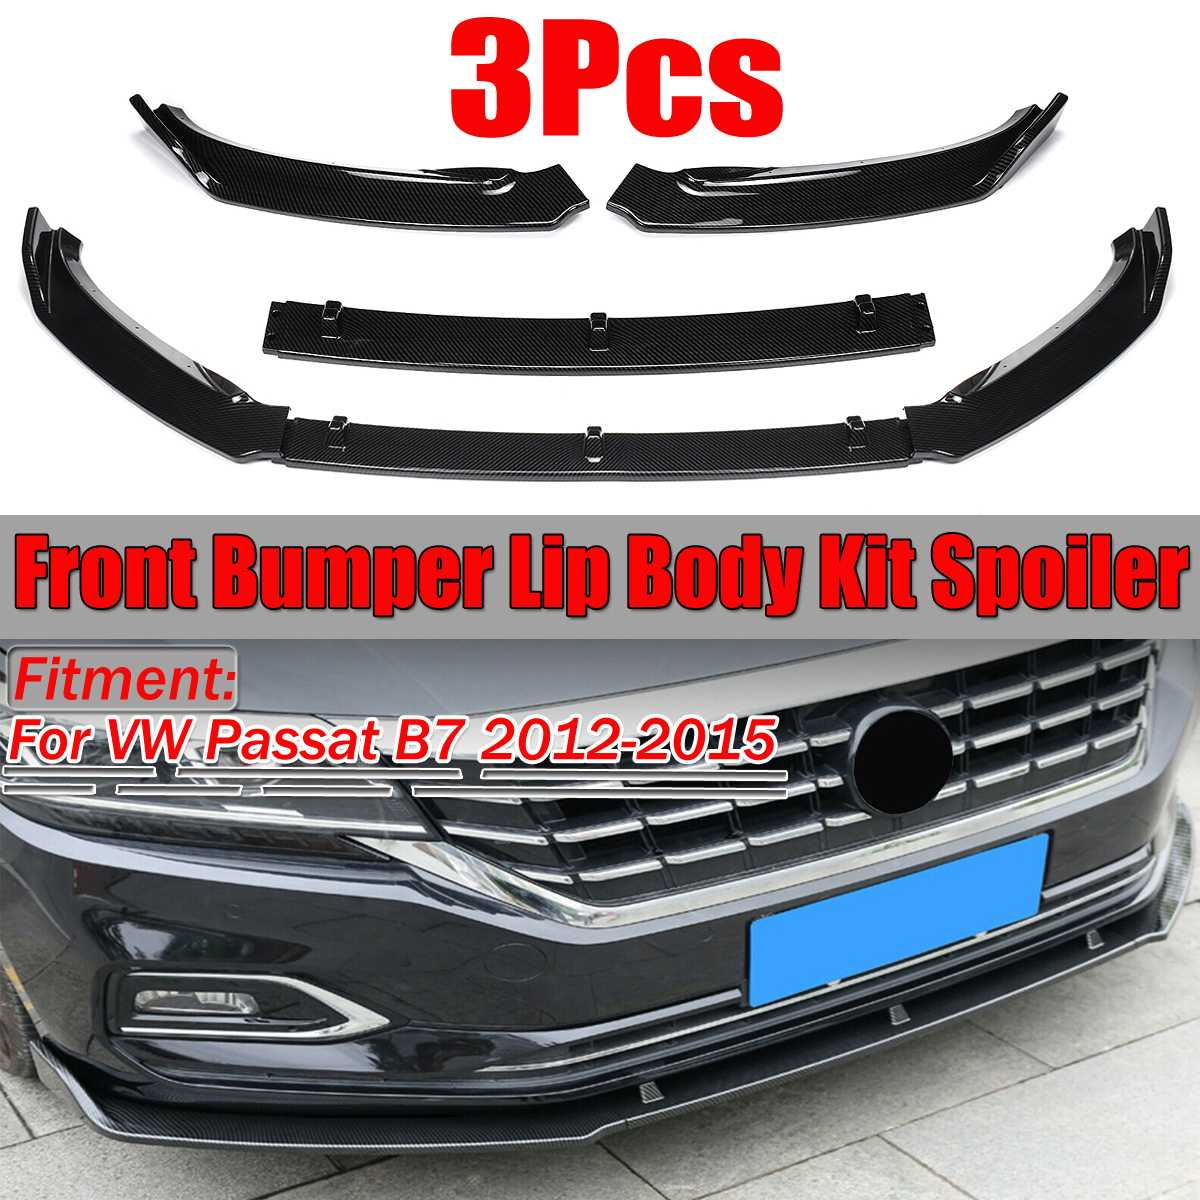 High Quality Car Front Bumper Splitter Lip Body Kit Spoiler Diffuser Guard Protecor Cover Trim For VW For Passat B7 2012-2015